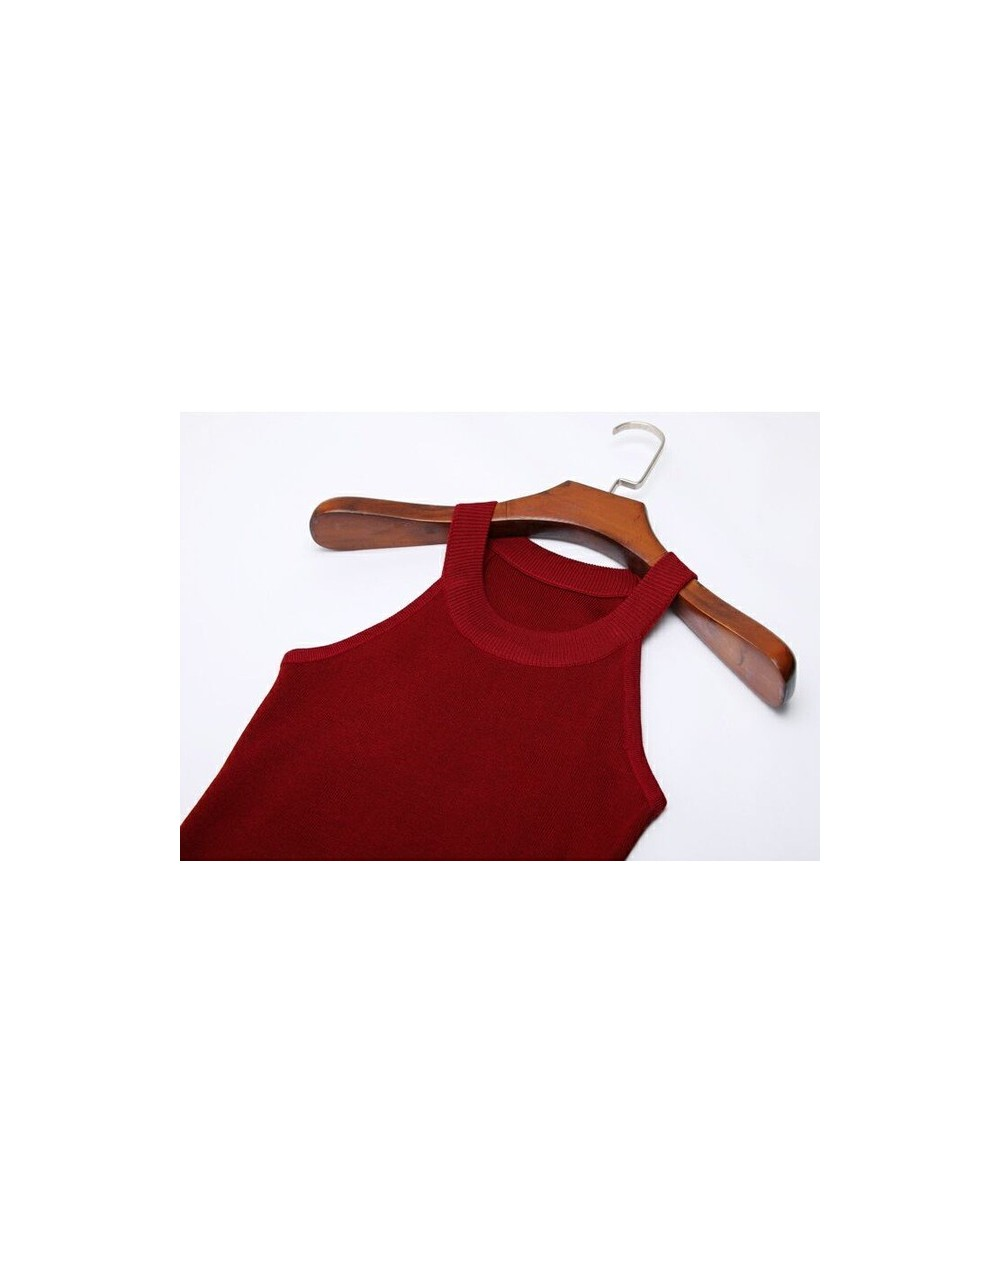 Summer Women Slim Knitting Halter Camisole Tops Female Bodycon Knitted Tanks Sleeveless Basic Solid T shirts 8017 - red wine...